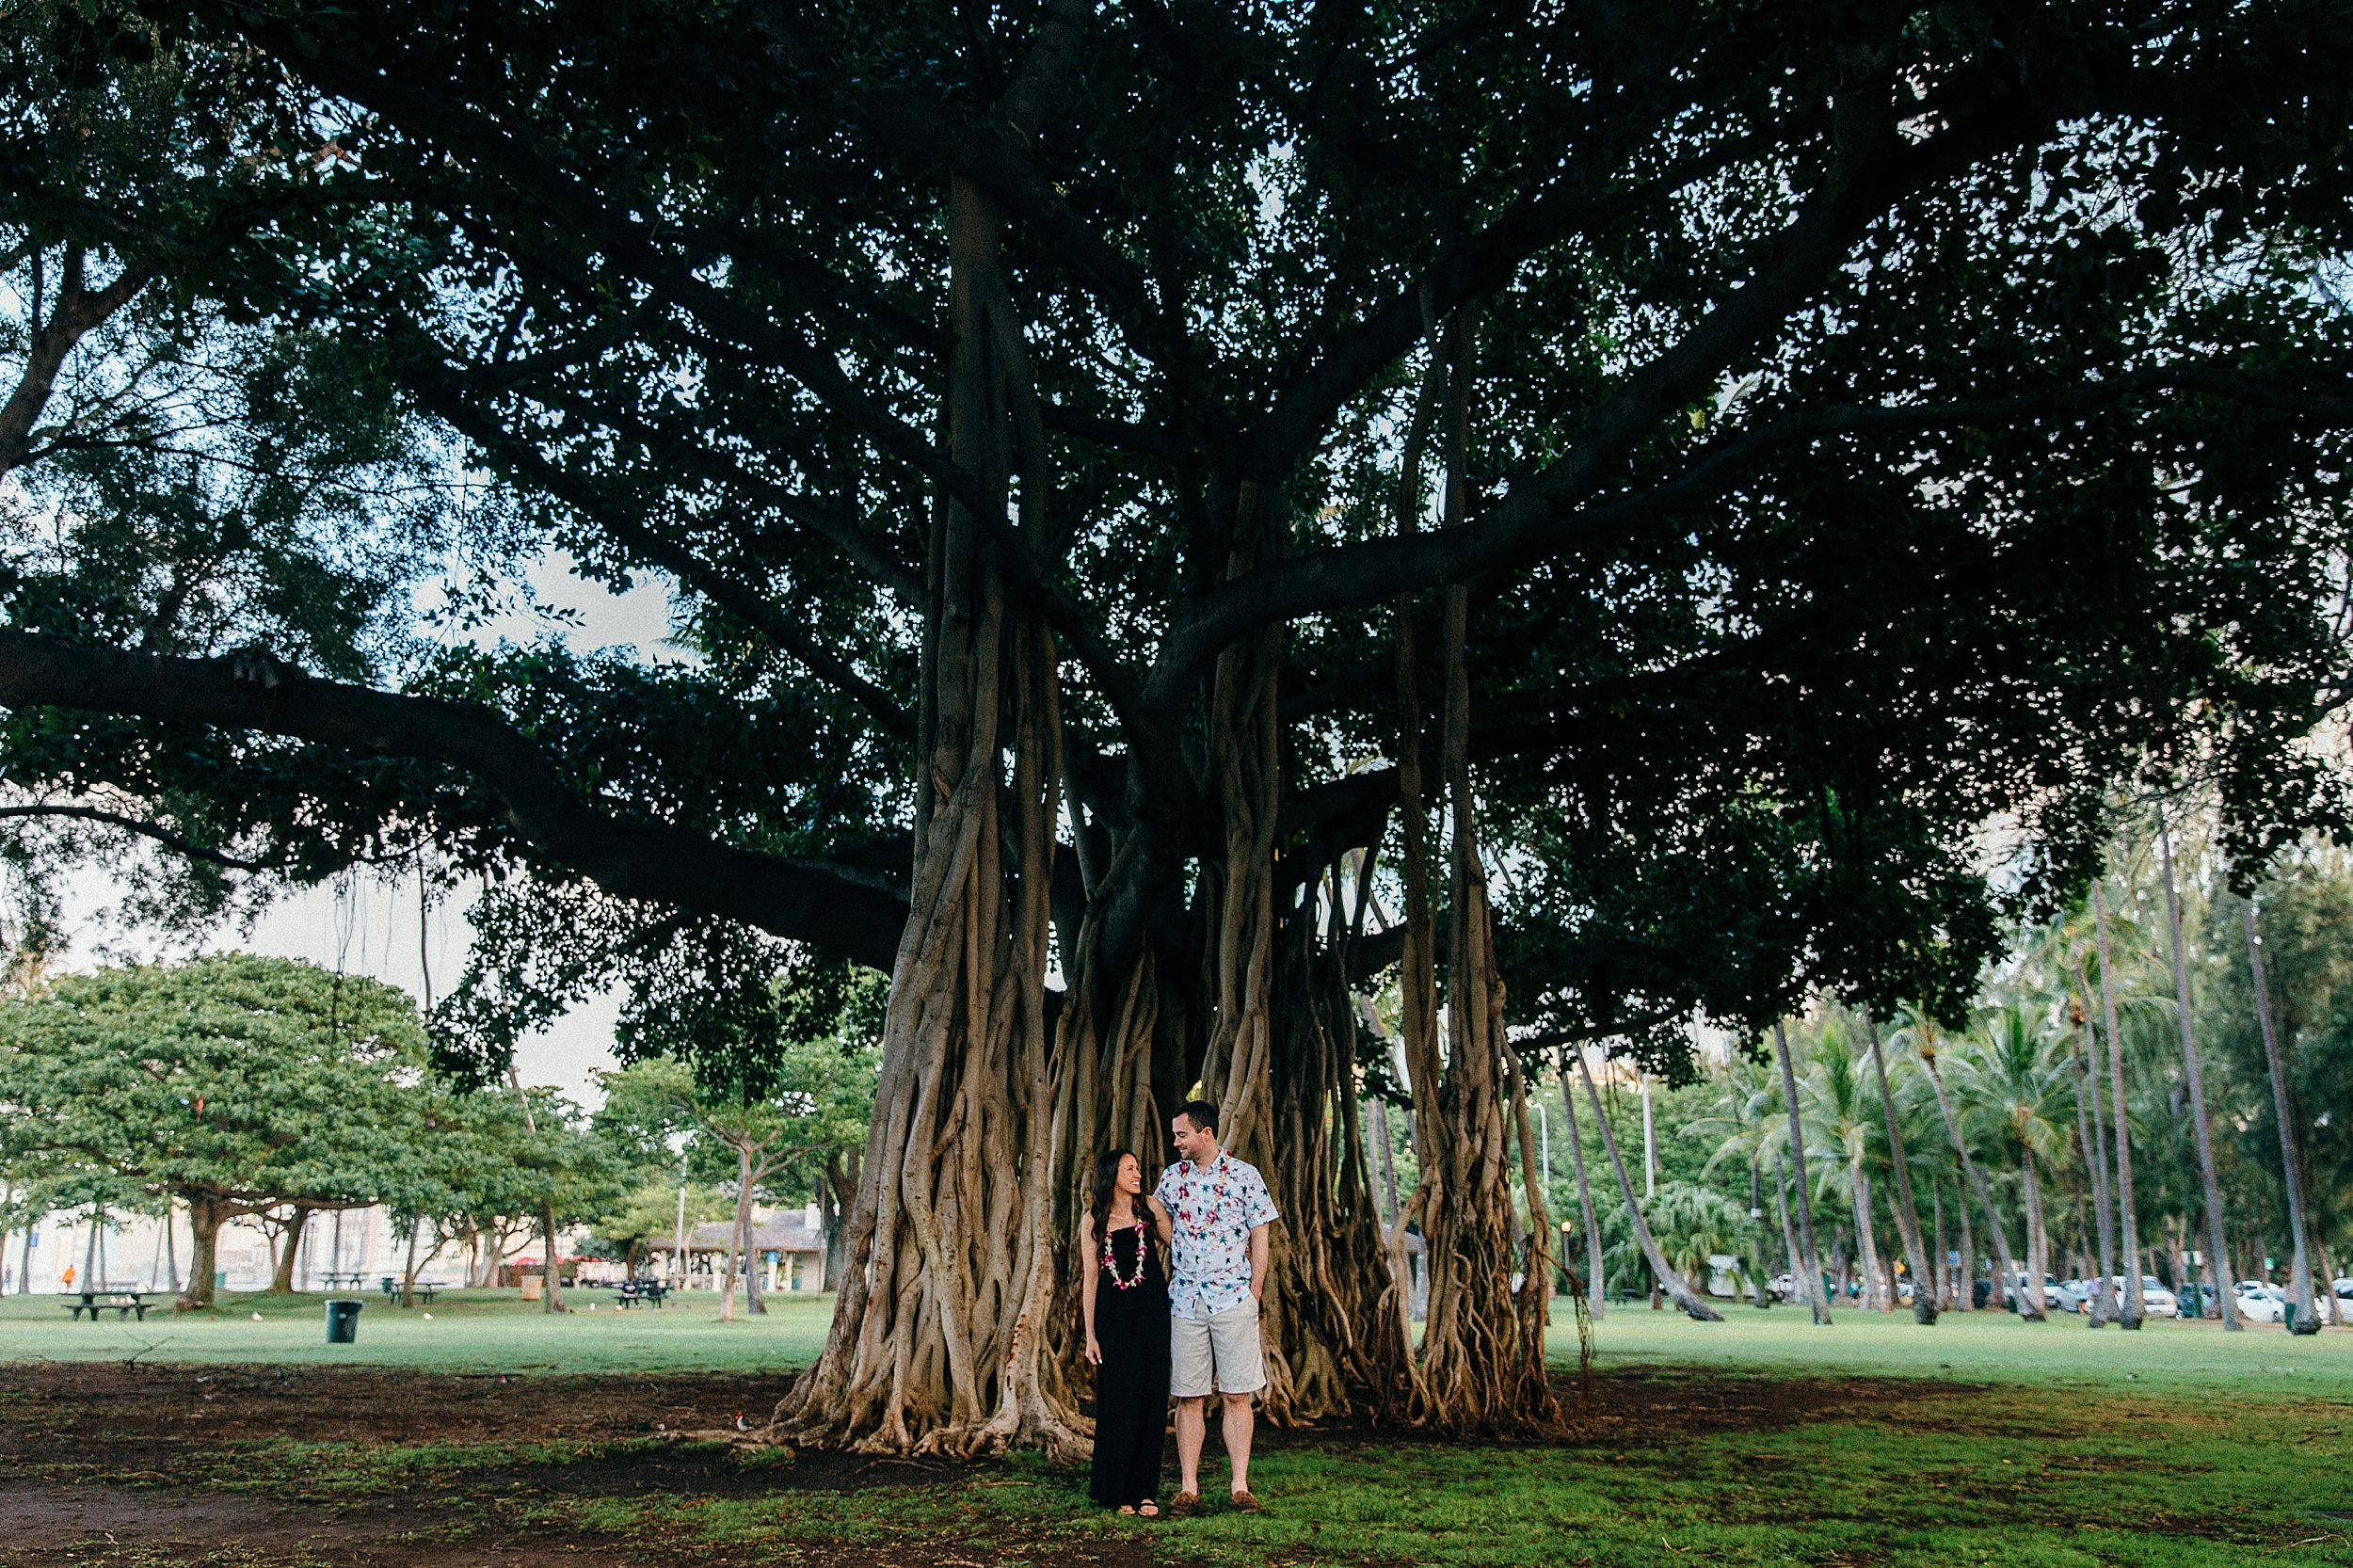 Hawaii Banyan Tree